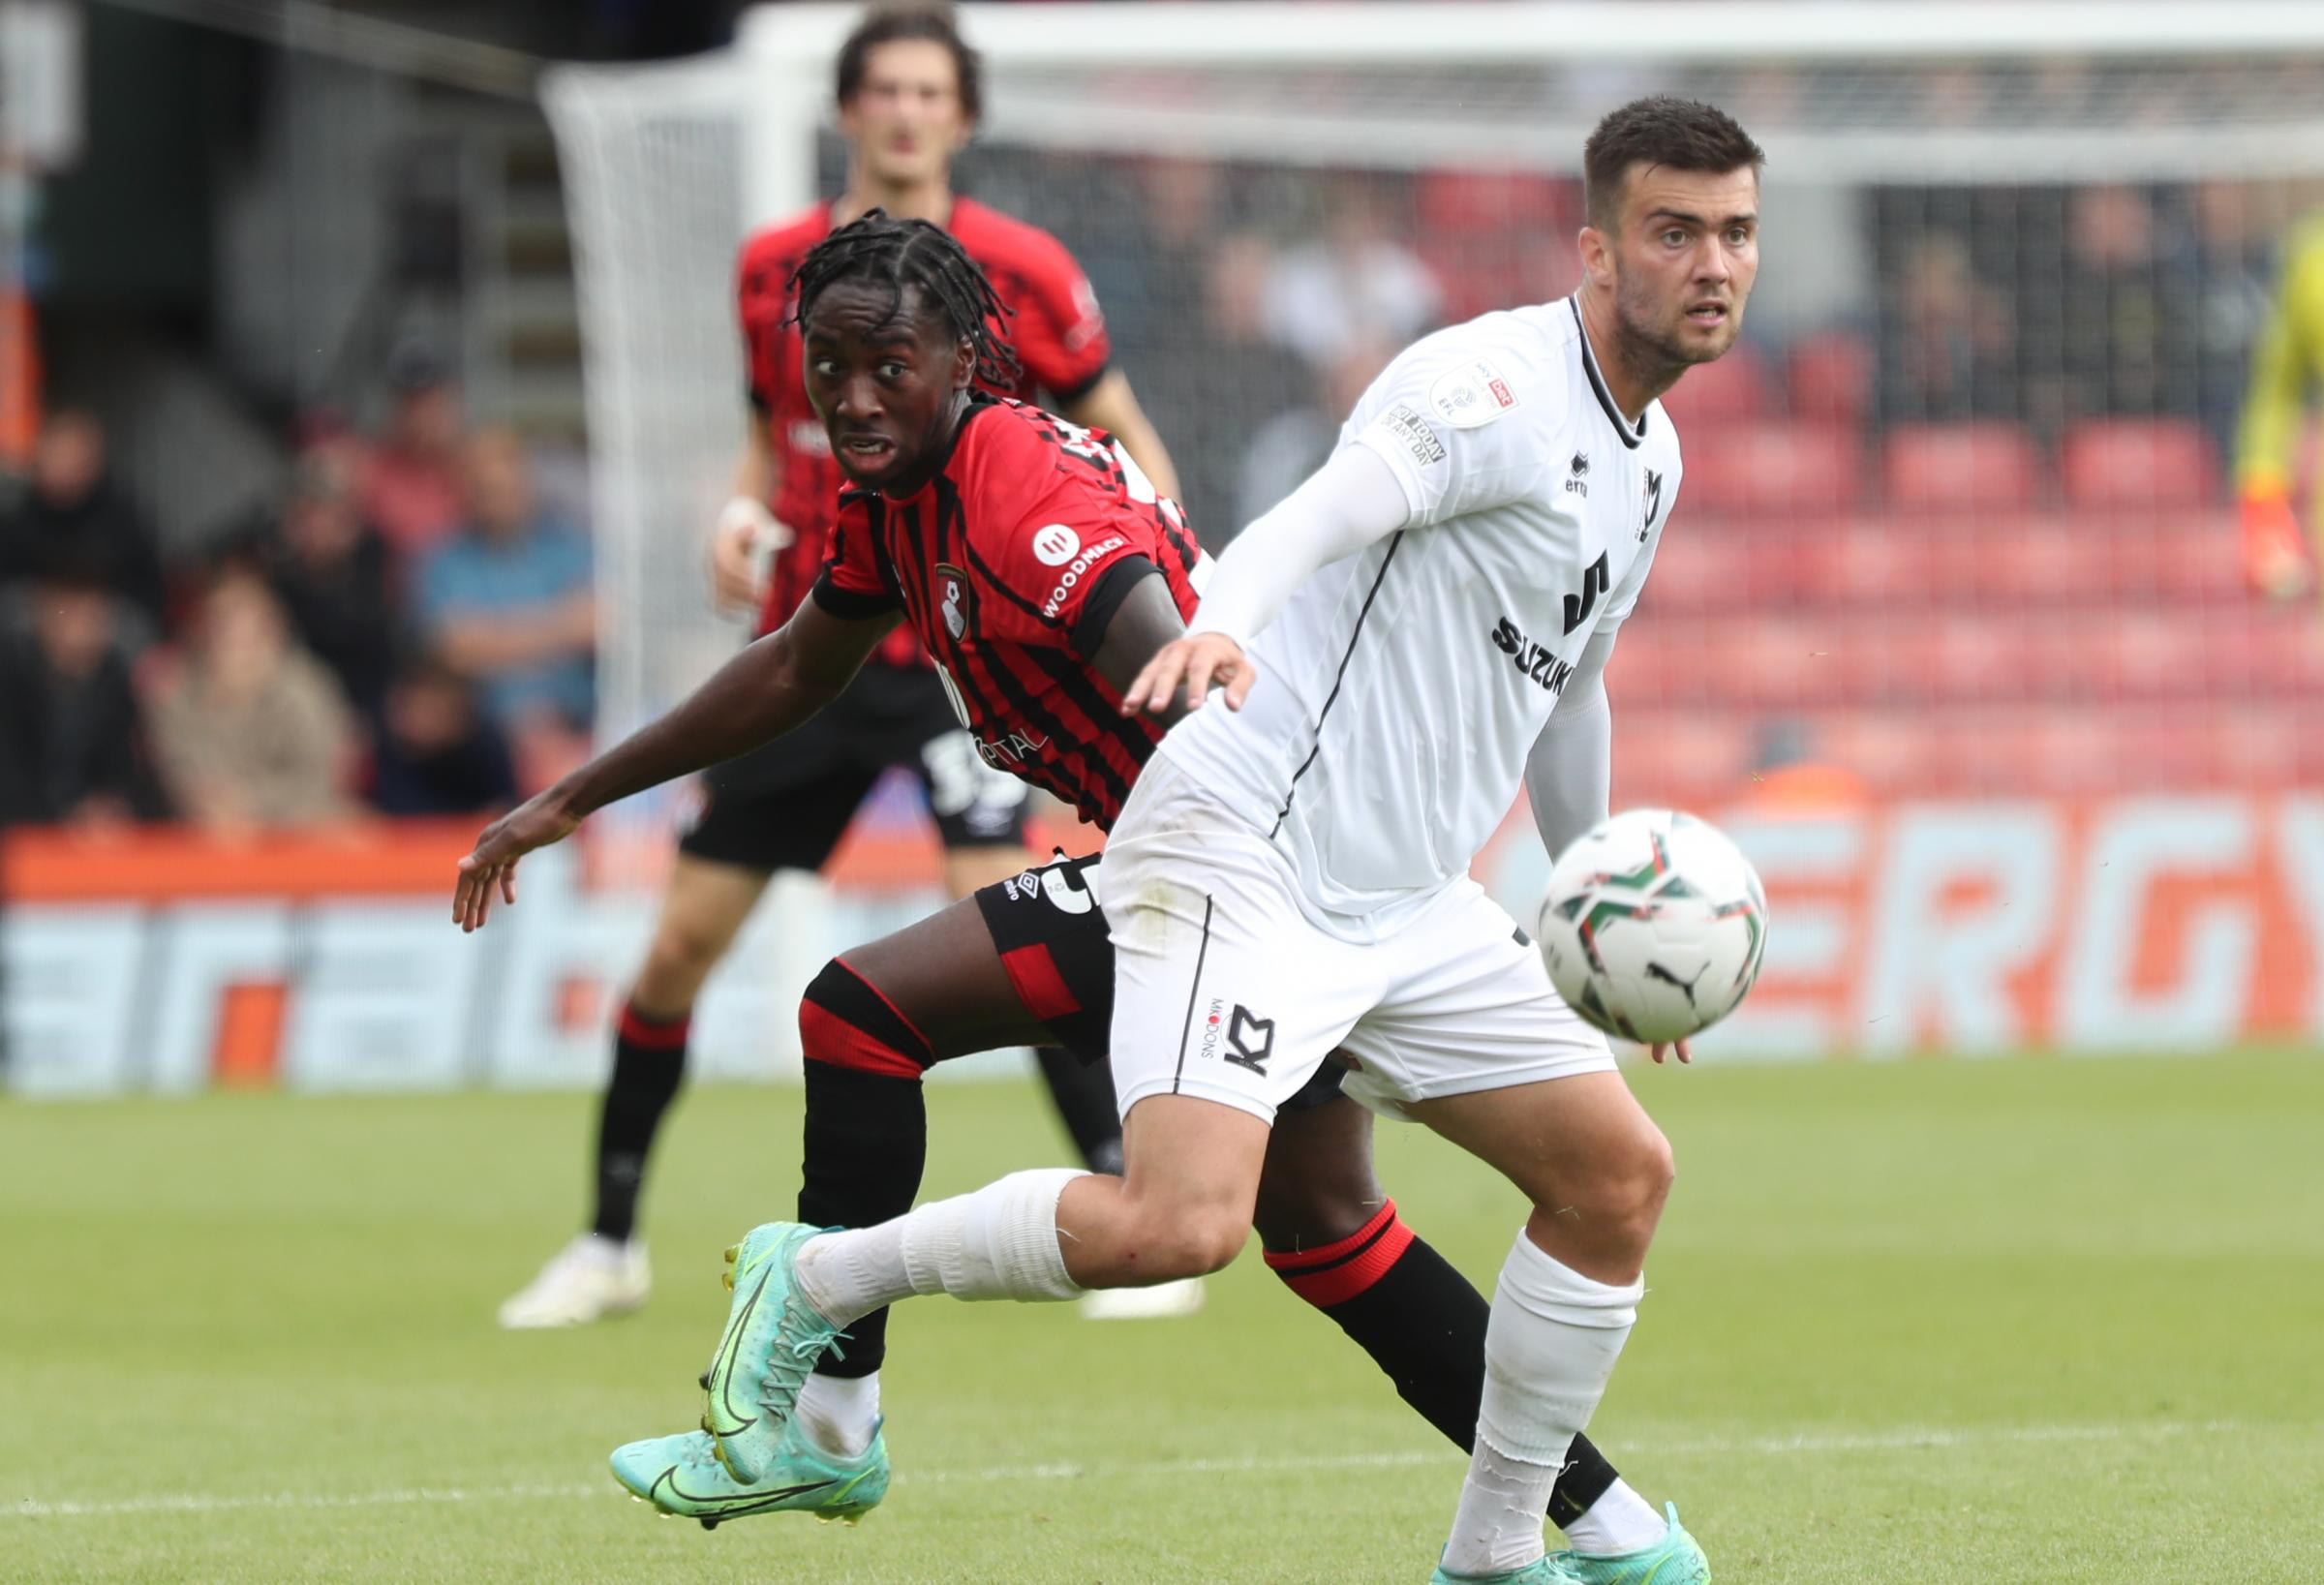 Parker hints Jordan Zemura is 'going to get game time' at Cherries this season